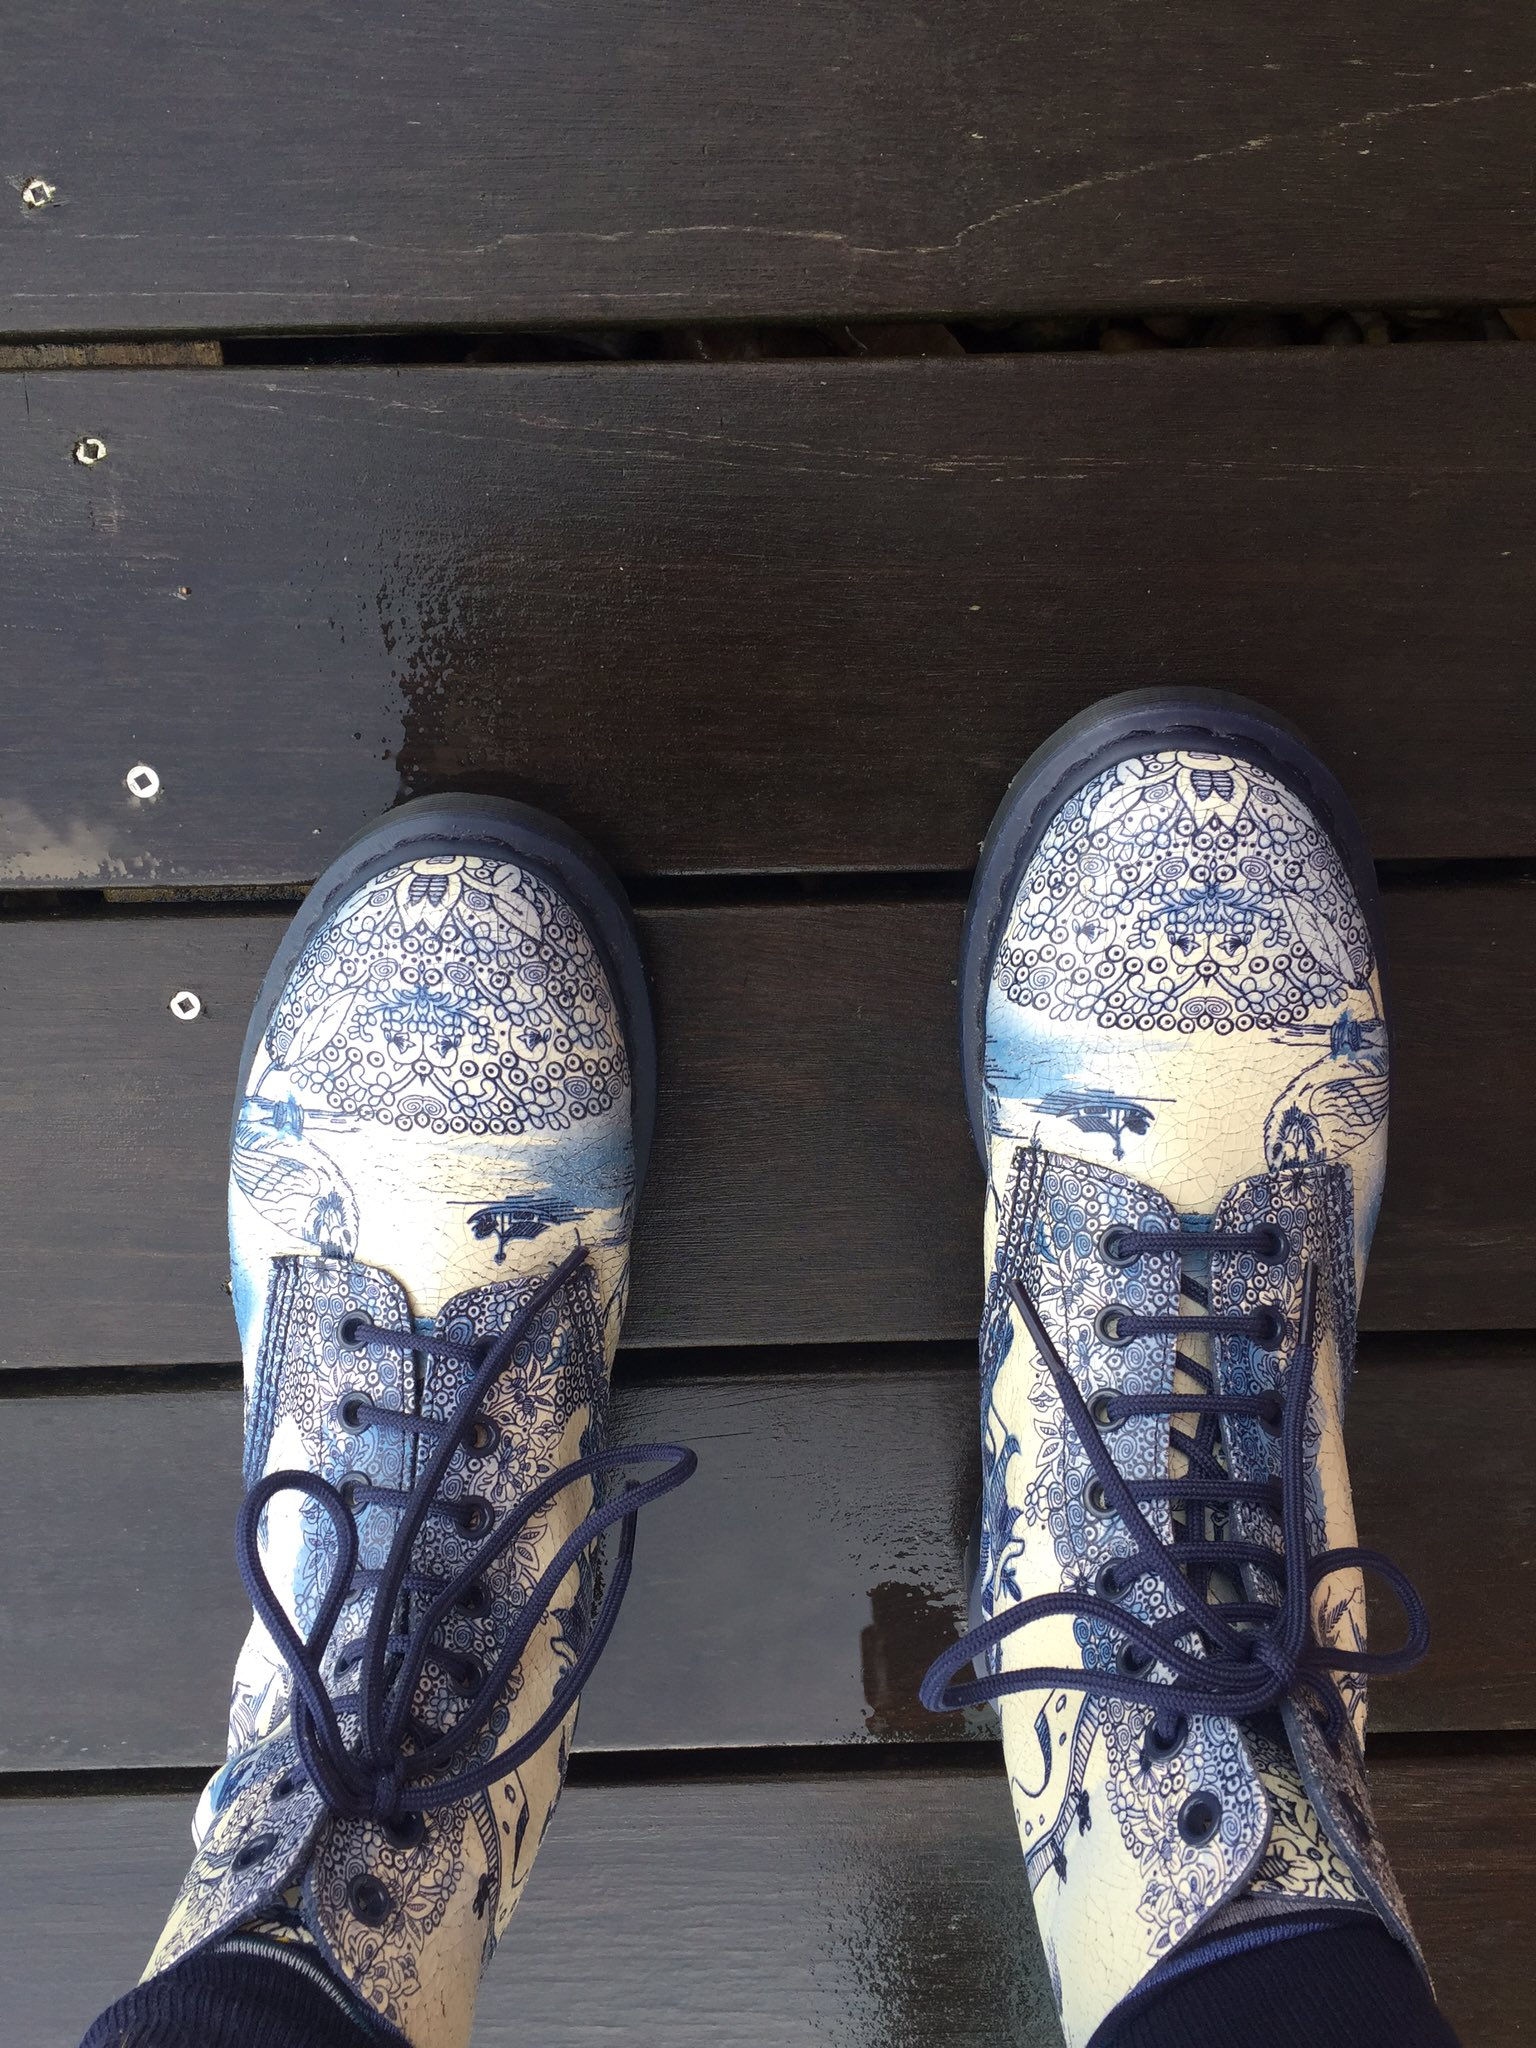 Shoe porn https://t.co/t0pSeOyOFe